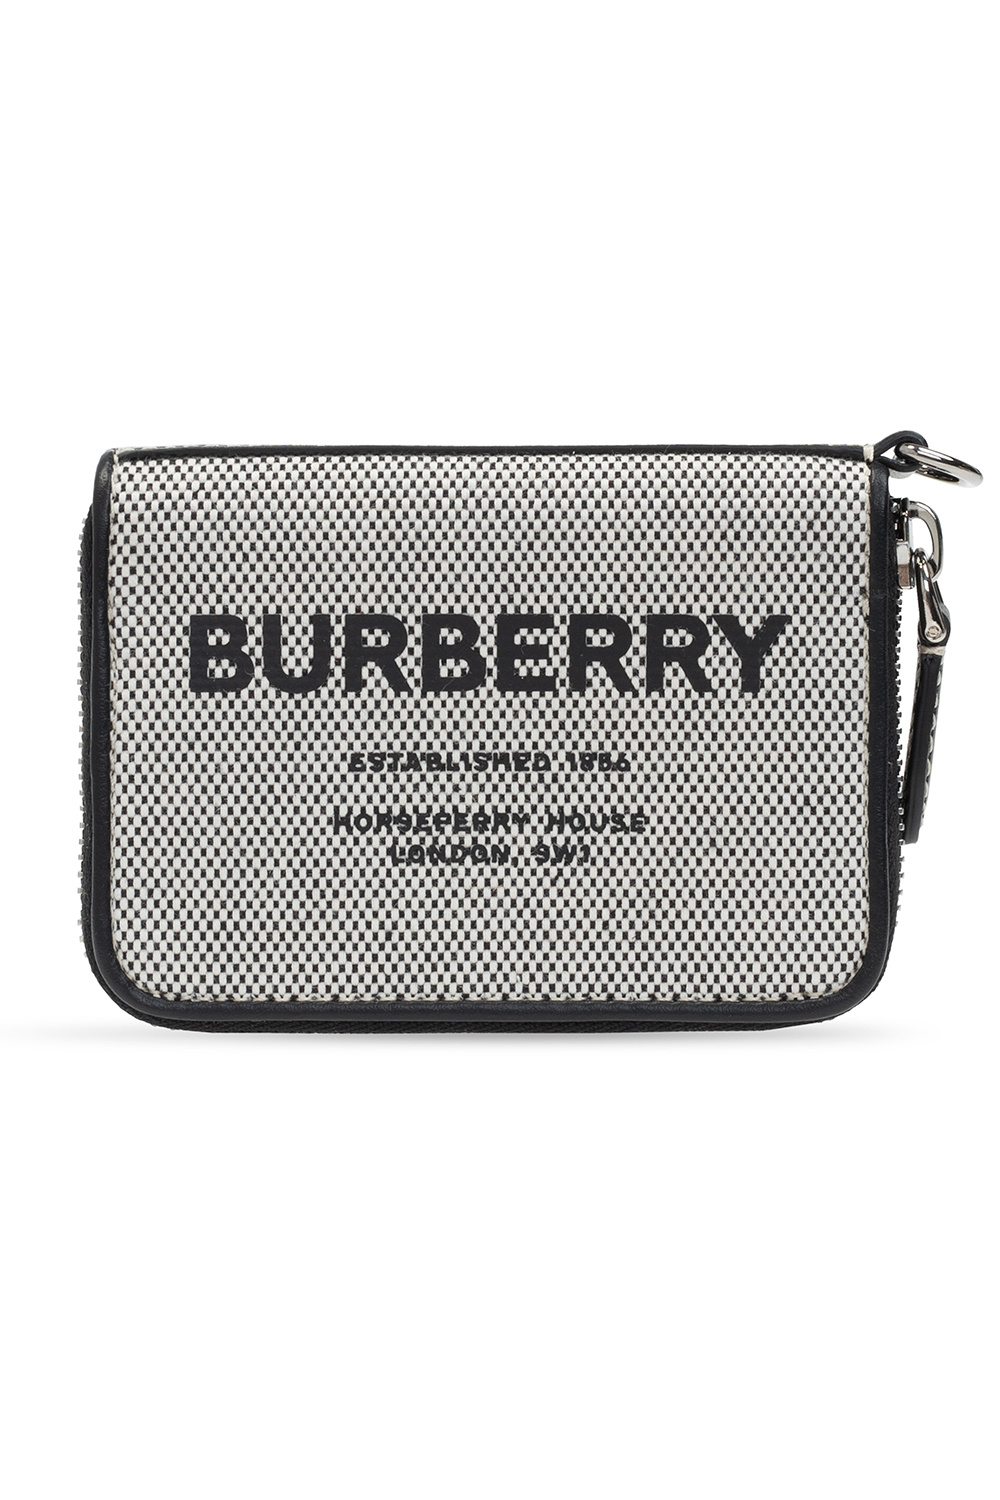 Burberry Wallet on strap